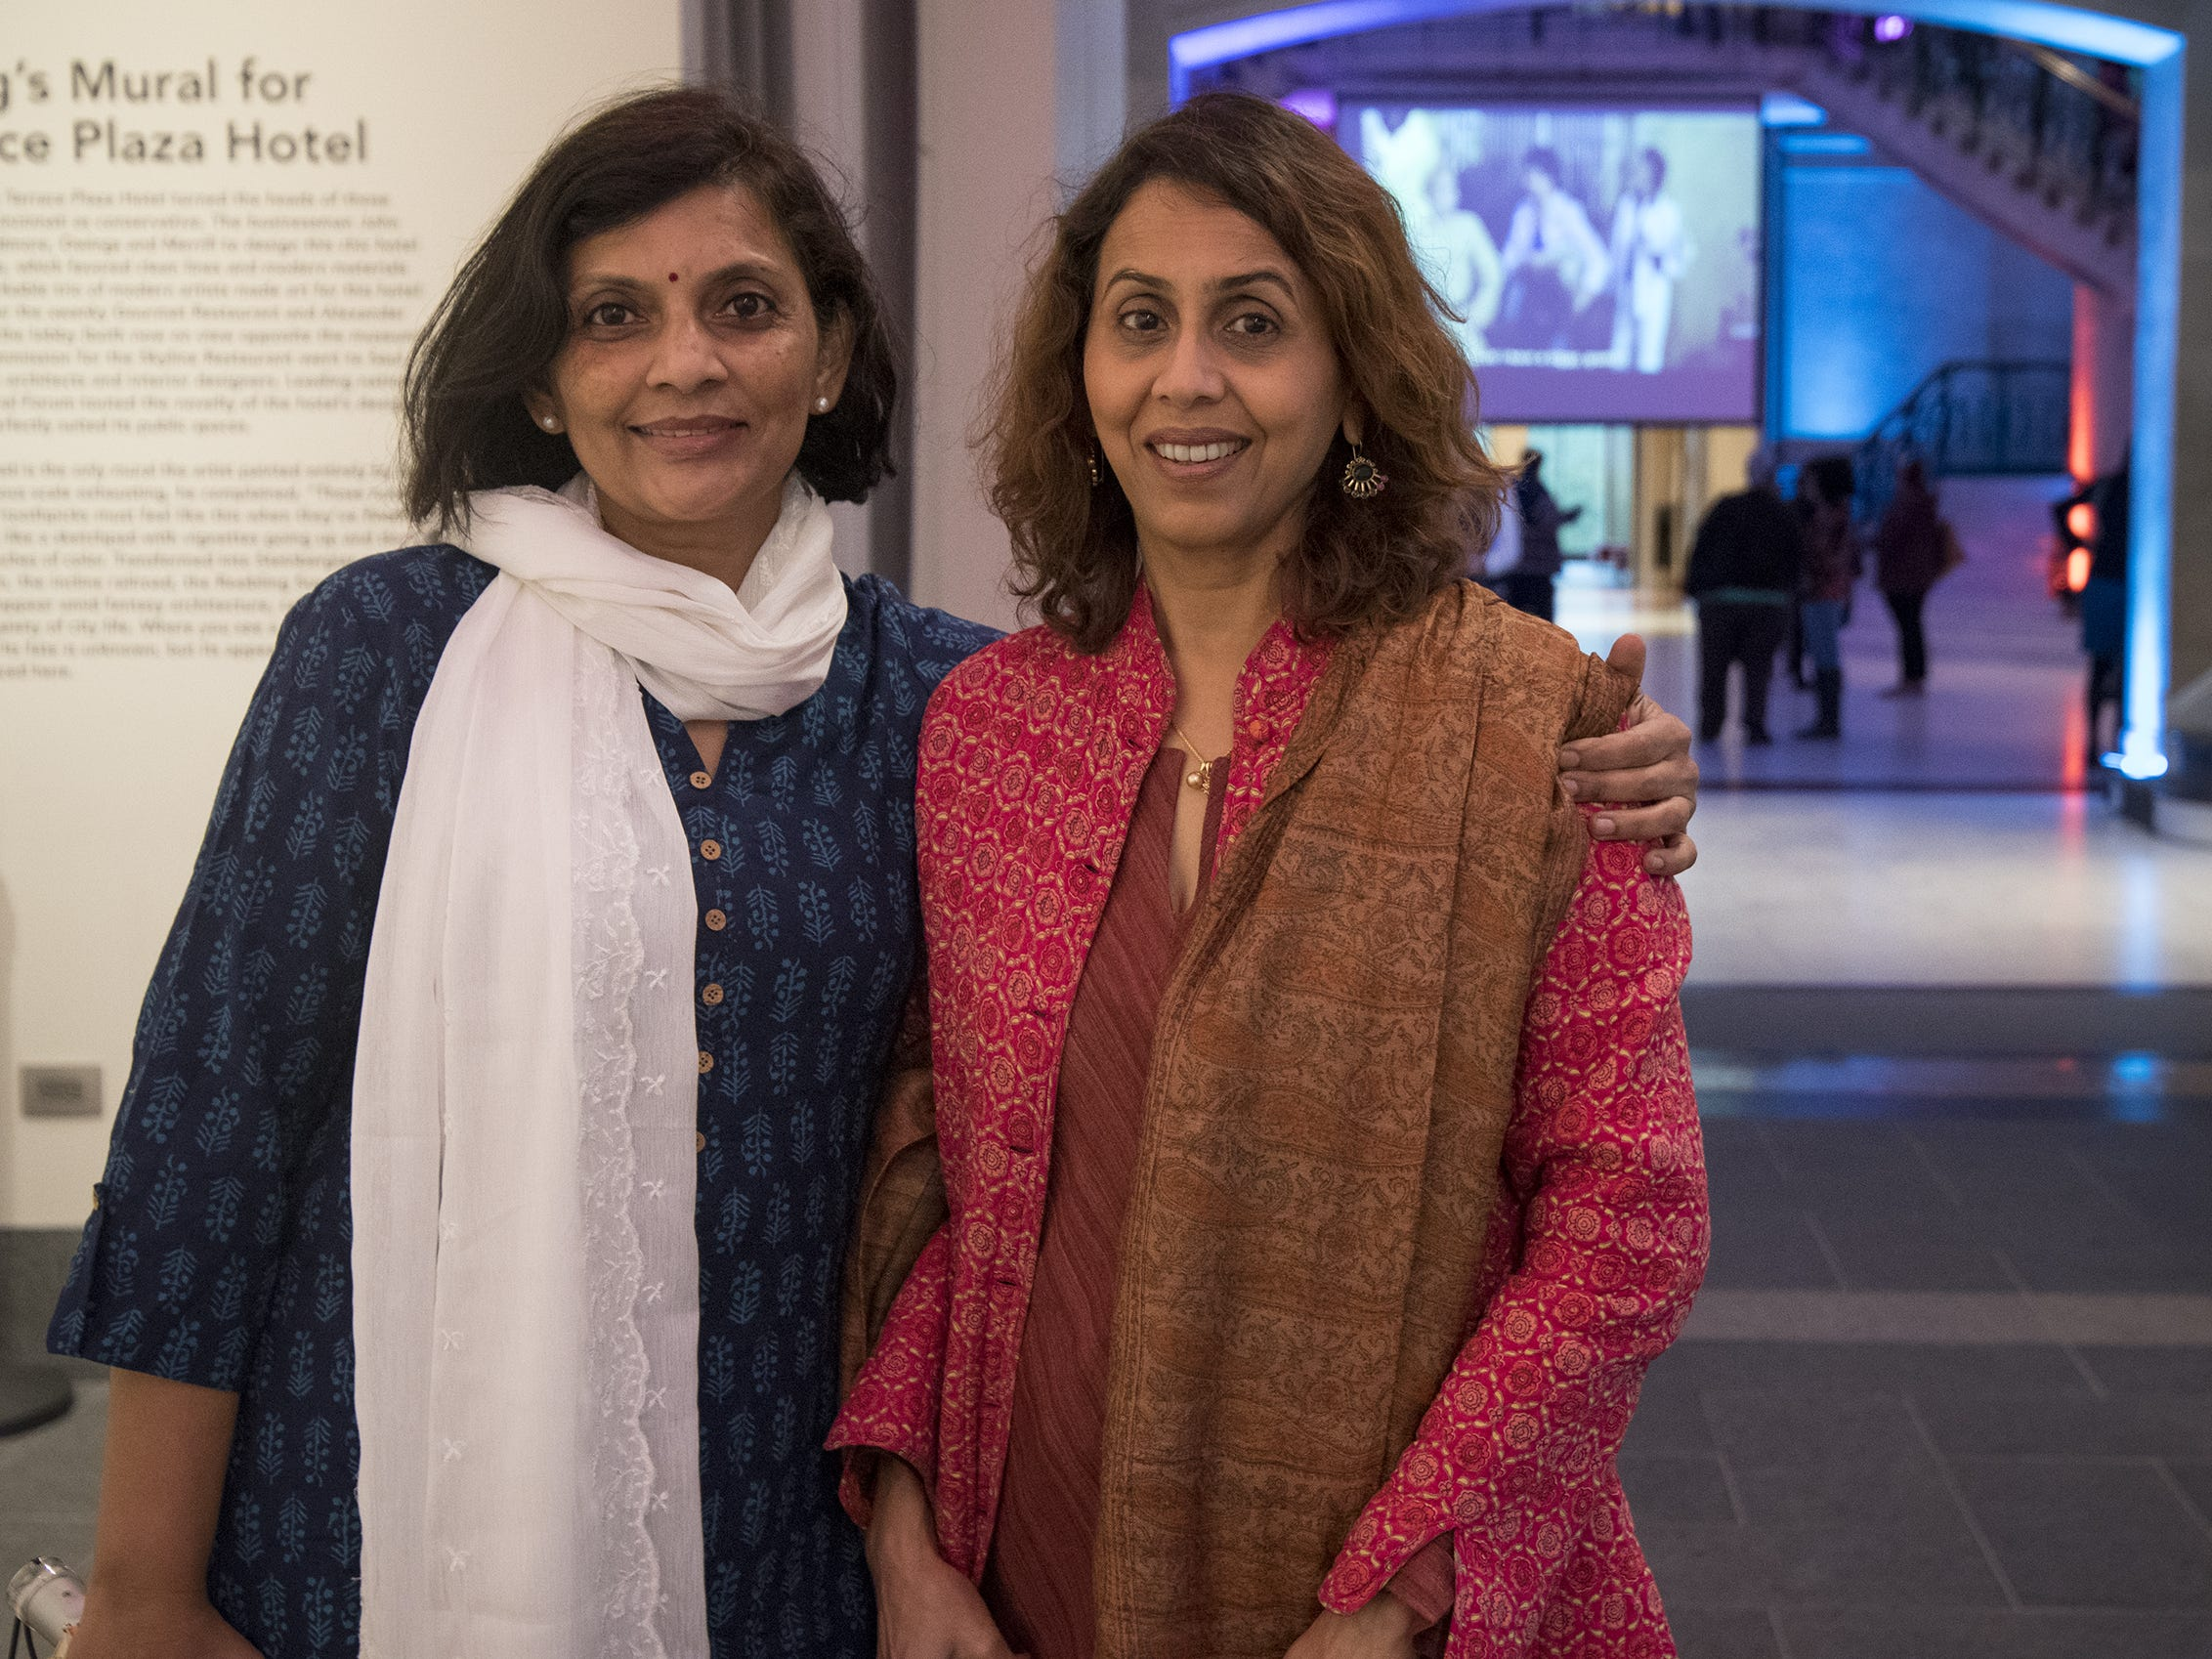 Kanchan Rajdhyakslas and Sheela Mehta attend Art After Dark at the Cincinnati Art Museum on Friday.